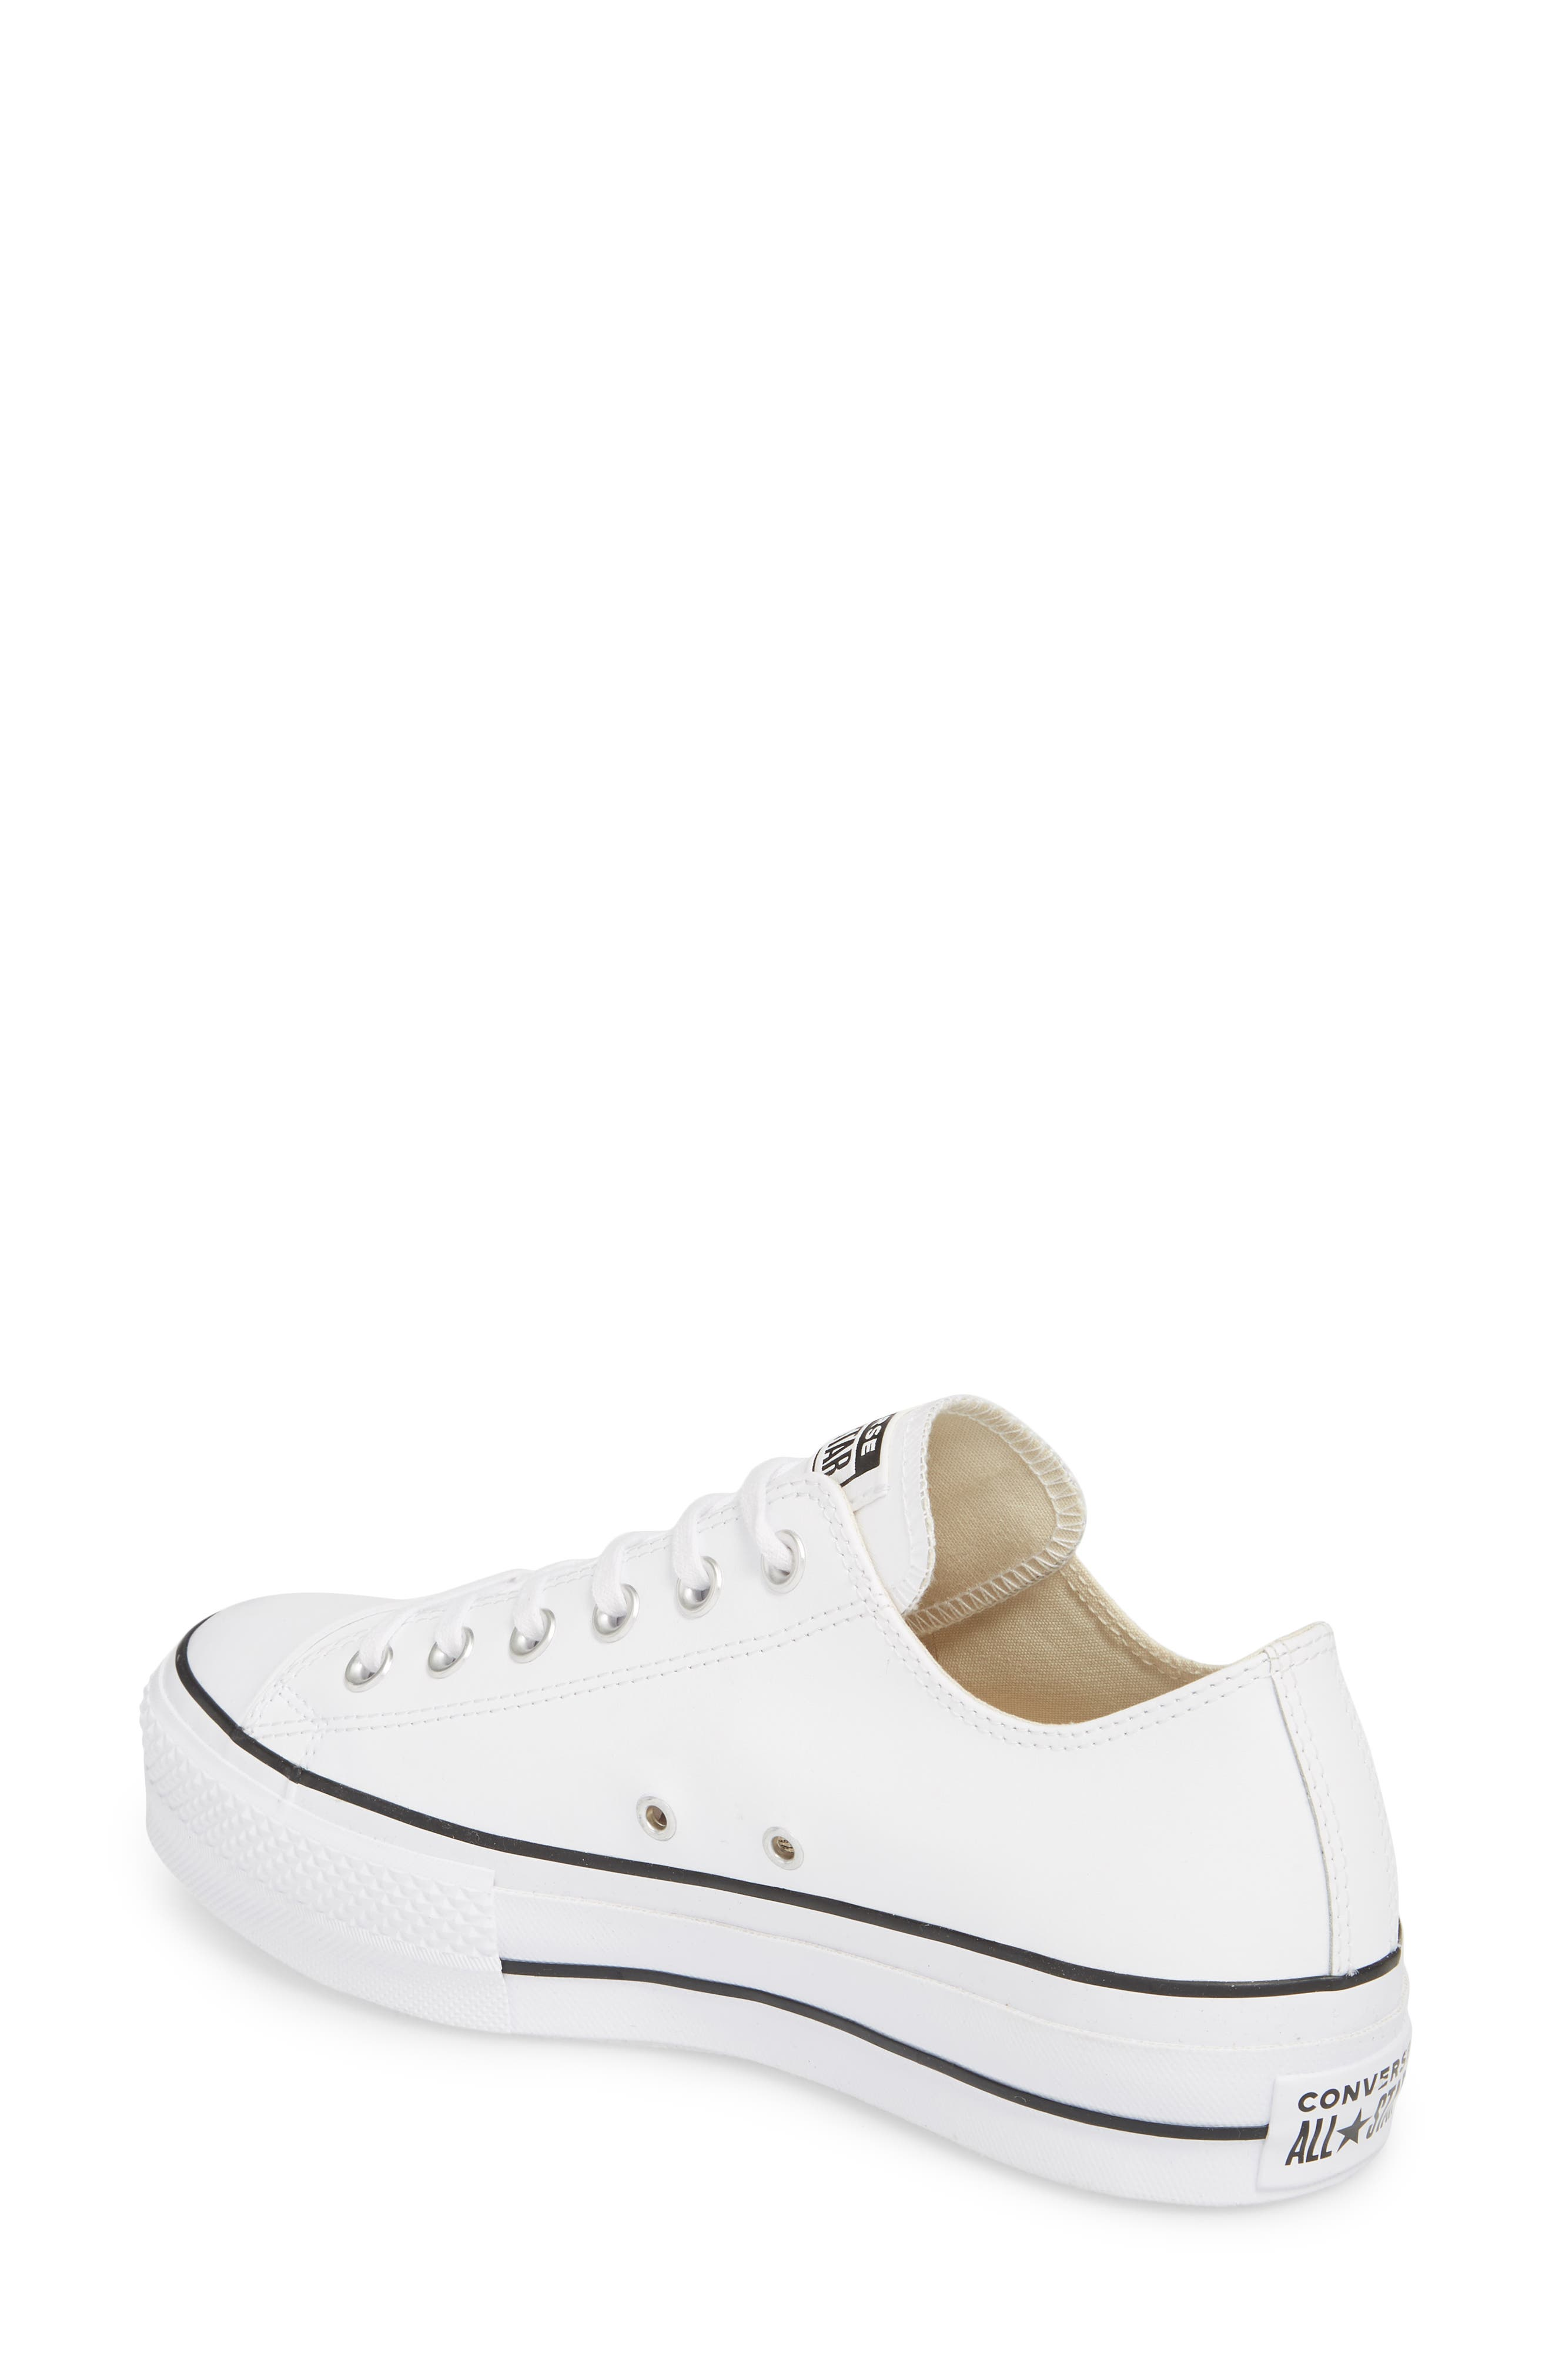 Chuck Taylor<sup>®</sup> All Star<sup>®</sup> Platform Sneaker,                             Alternate thumbnail 2, color,                             WHITE LEATHER